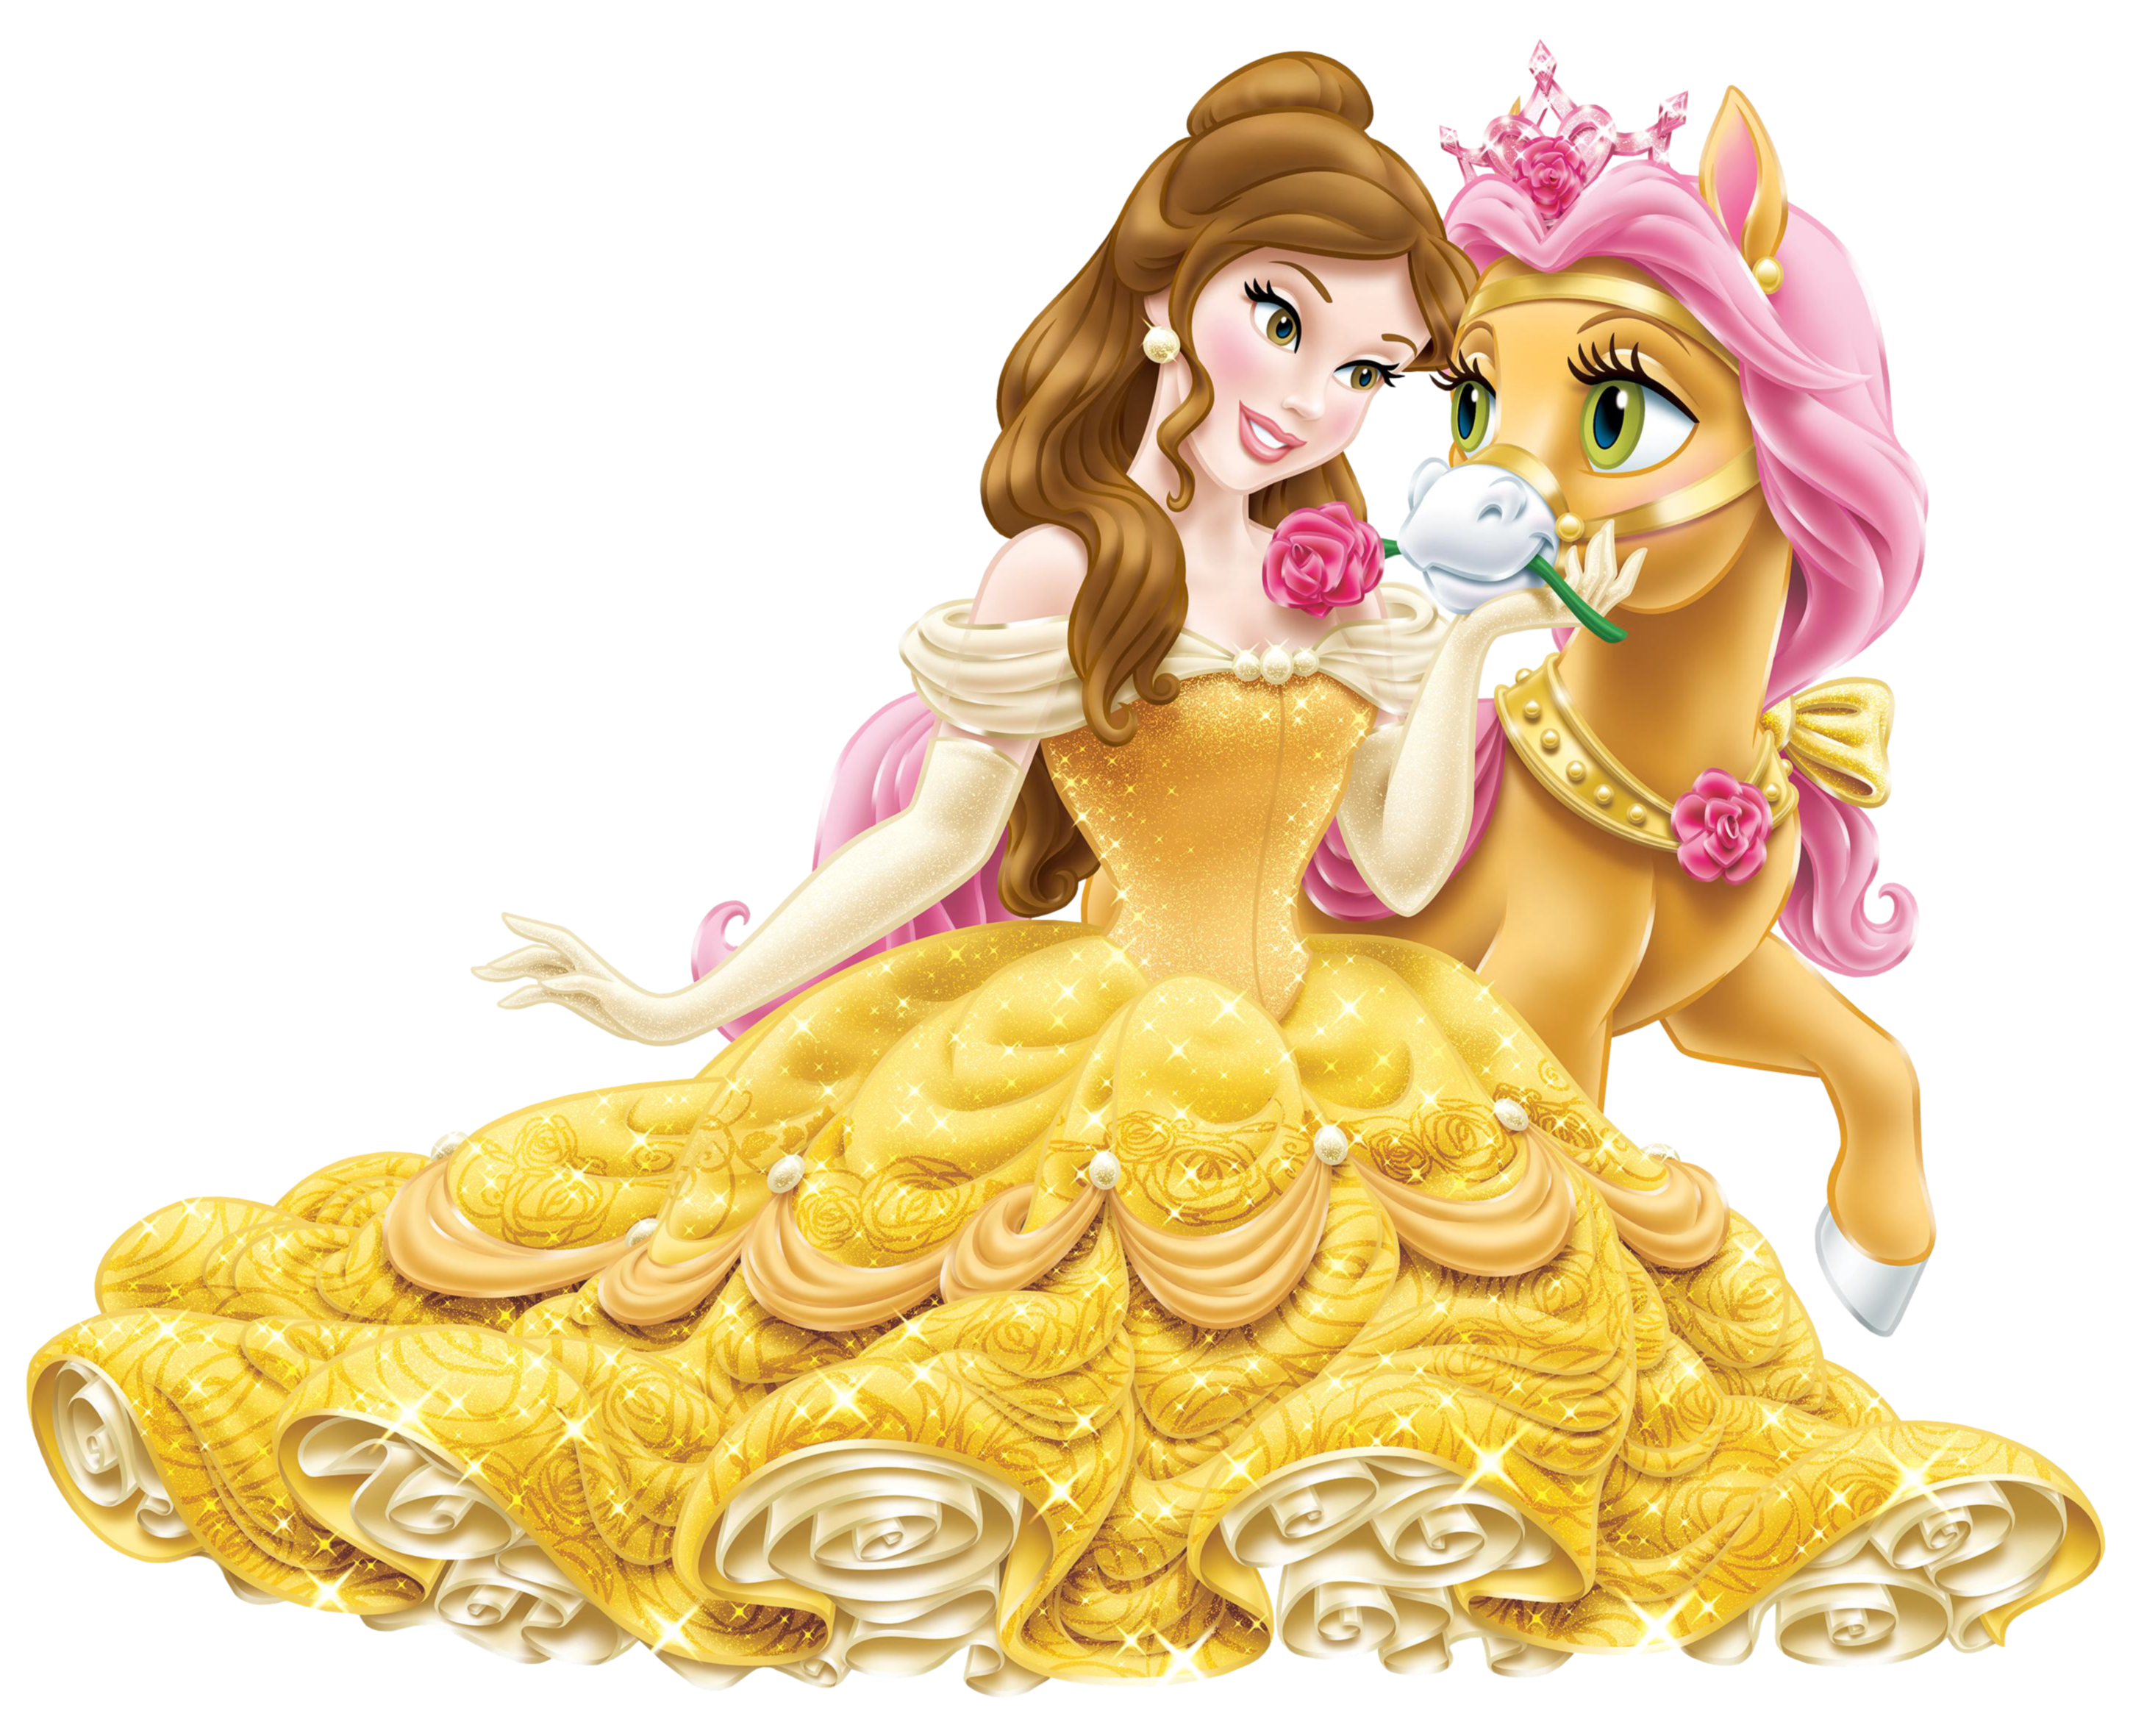 Disney Princess Belle with Cute Pony Transparent PNG Clip Art Image.